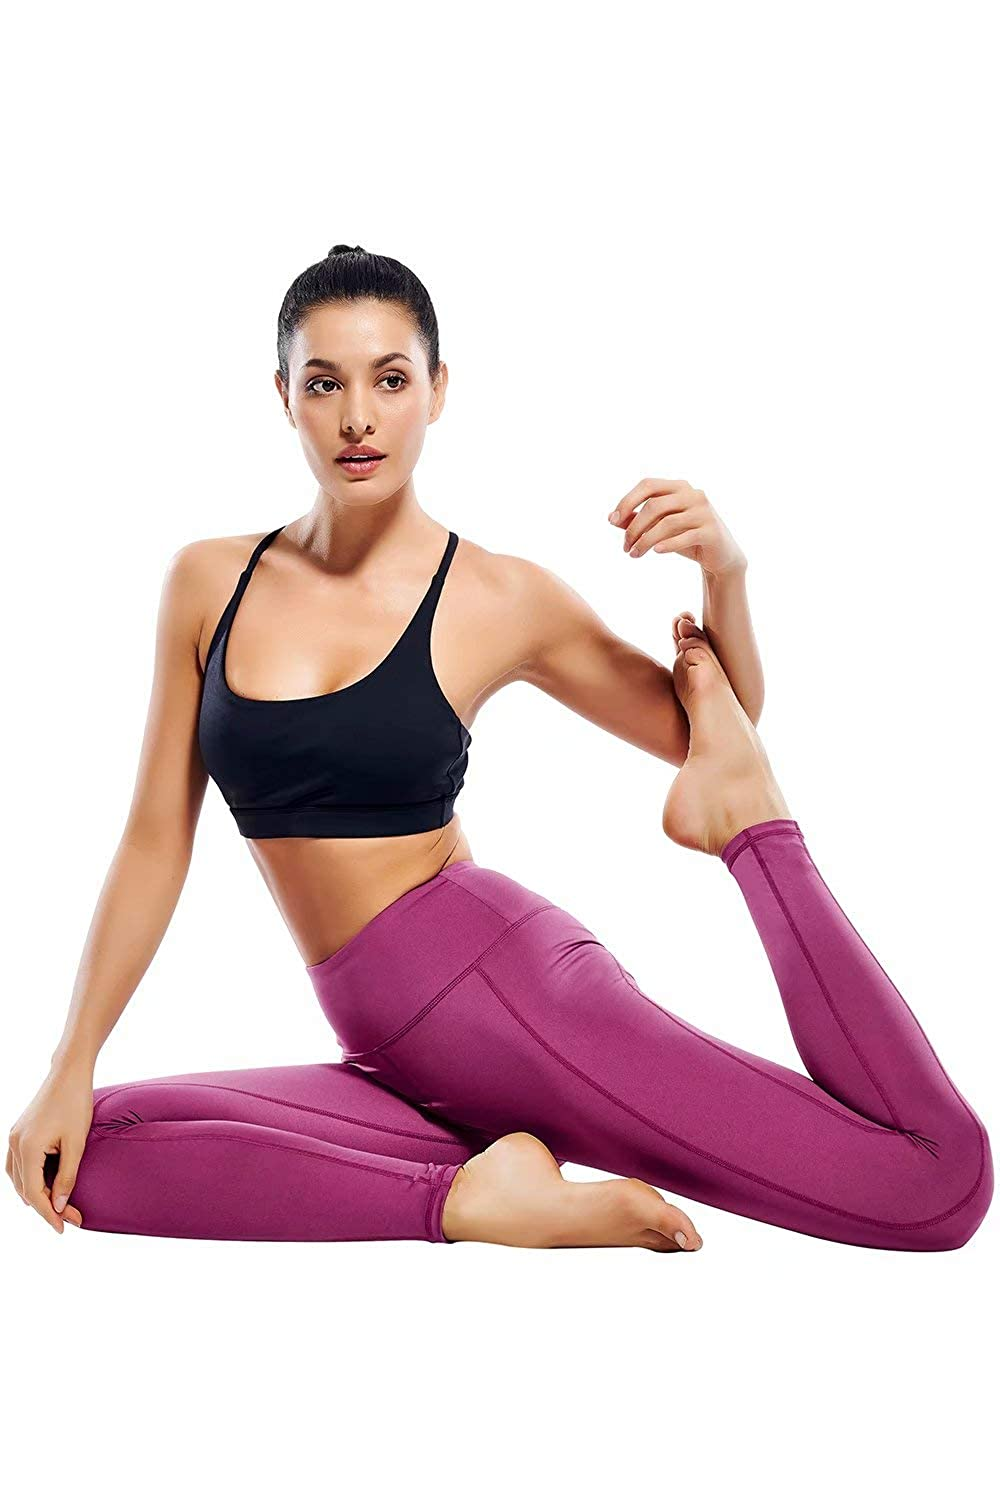 Womens Workout Leggings with Pockets High Waist Athletic Running Leggings Ankle Length Yoga Pants for Women